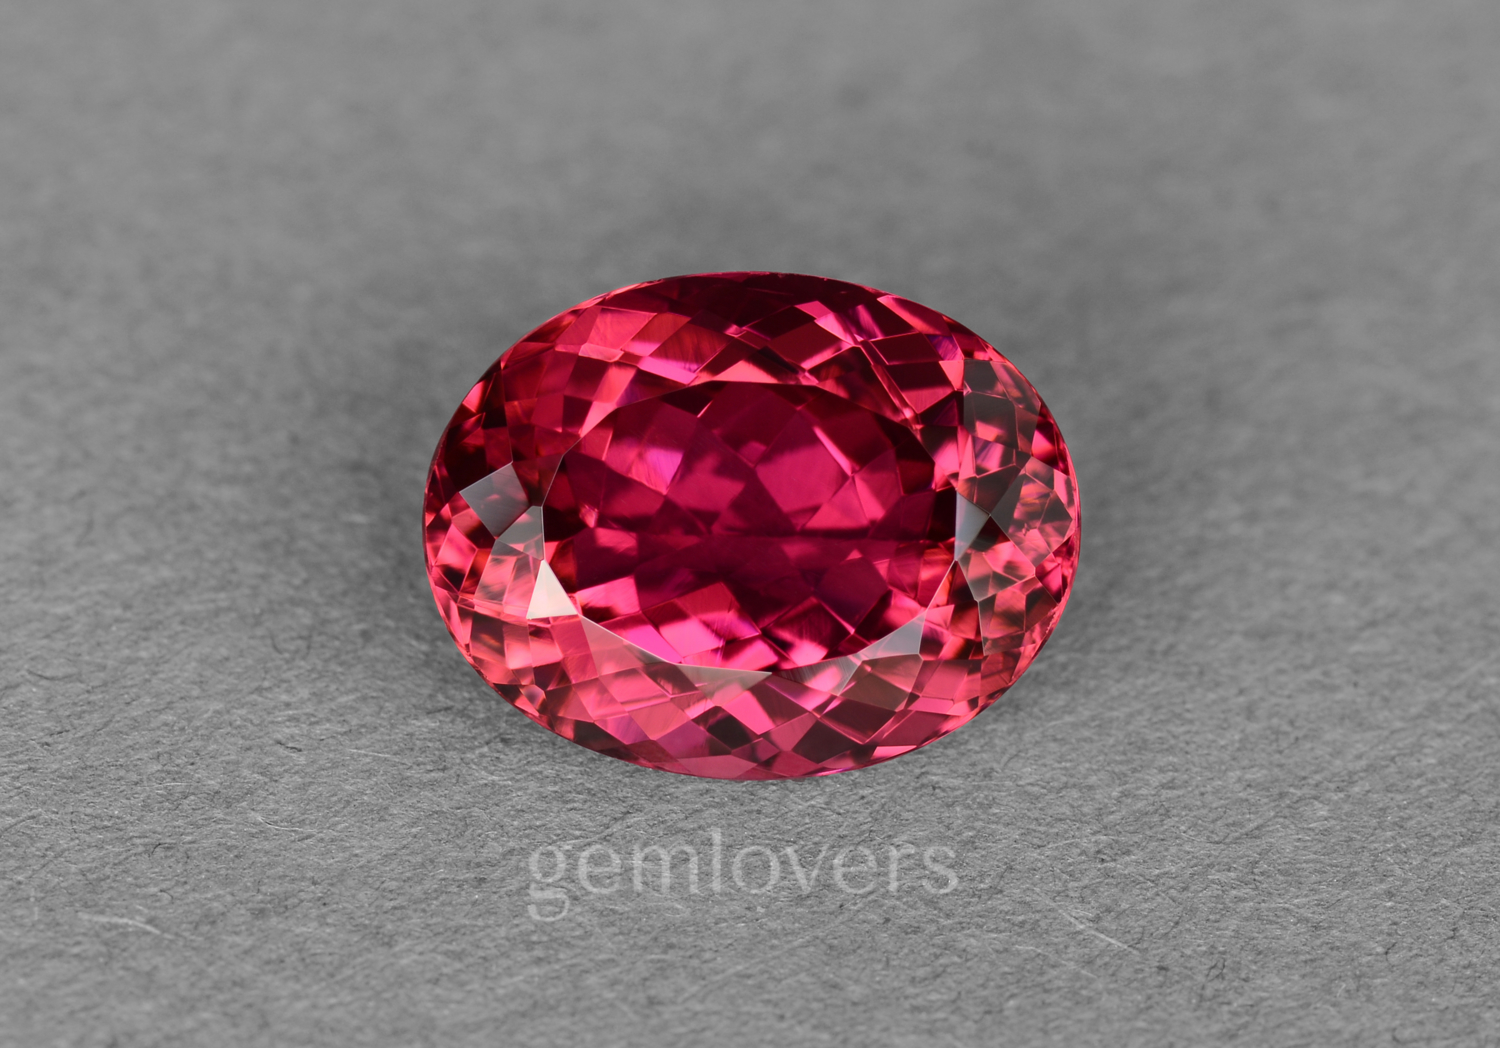 Oval rubellite from Brazil